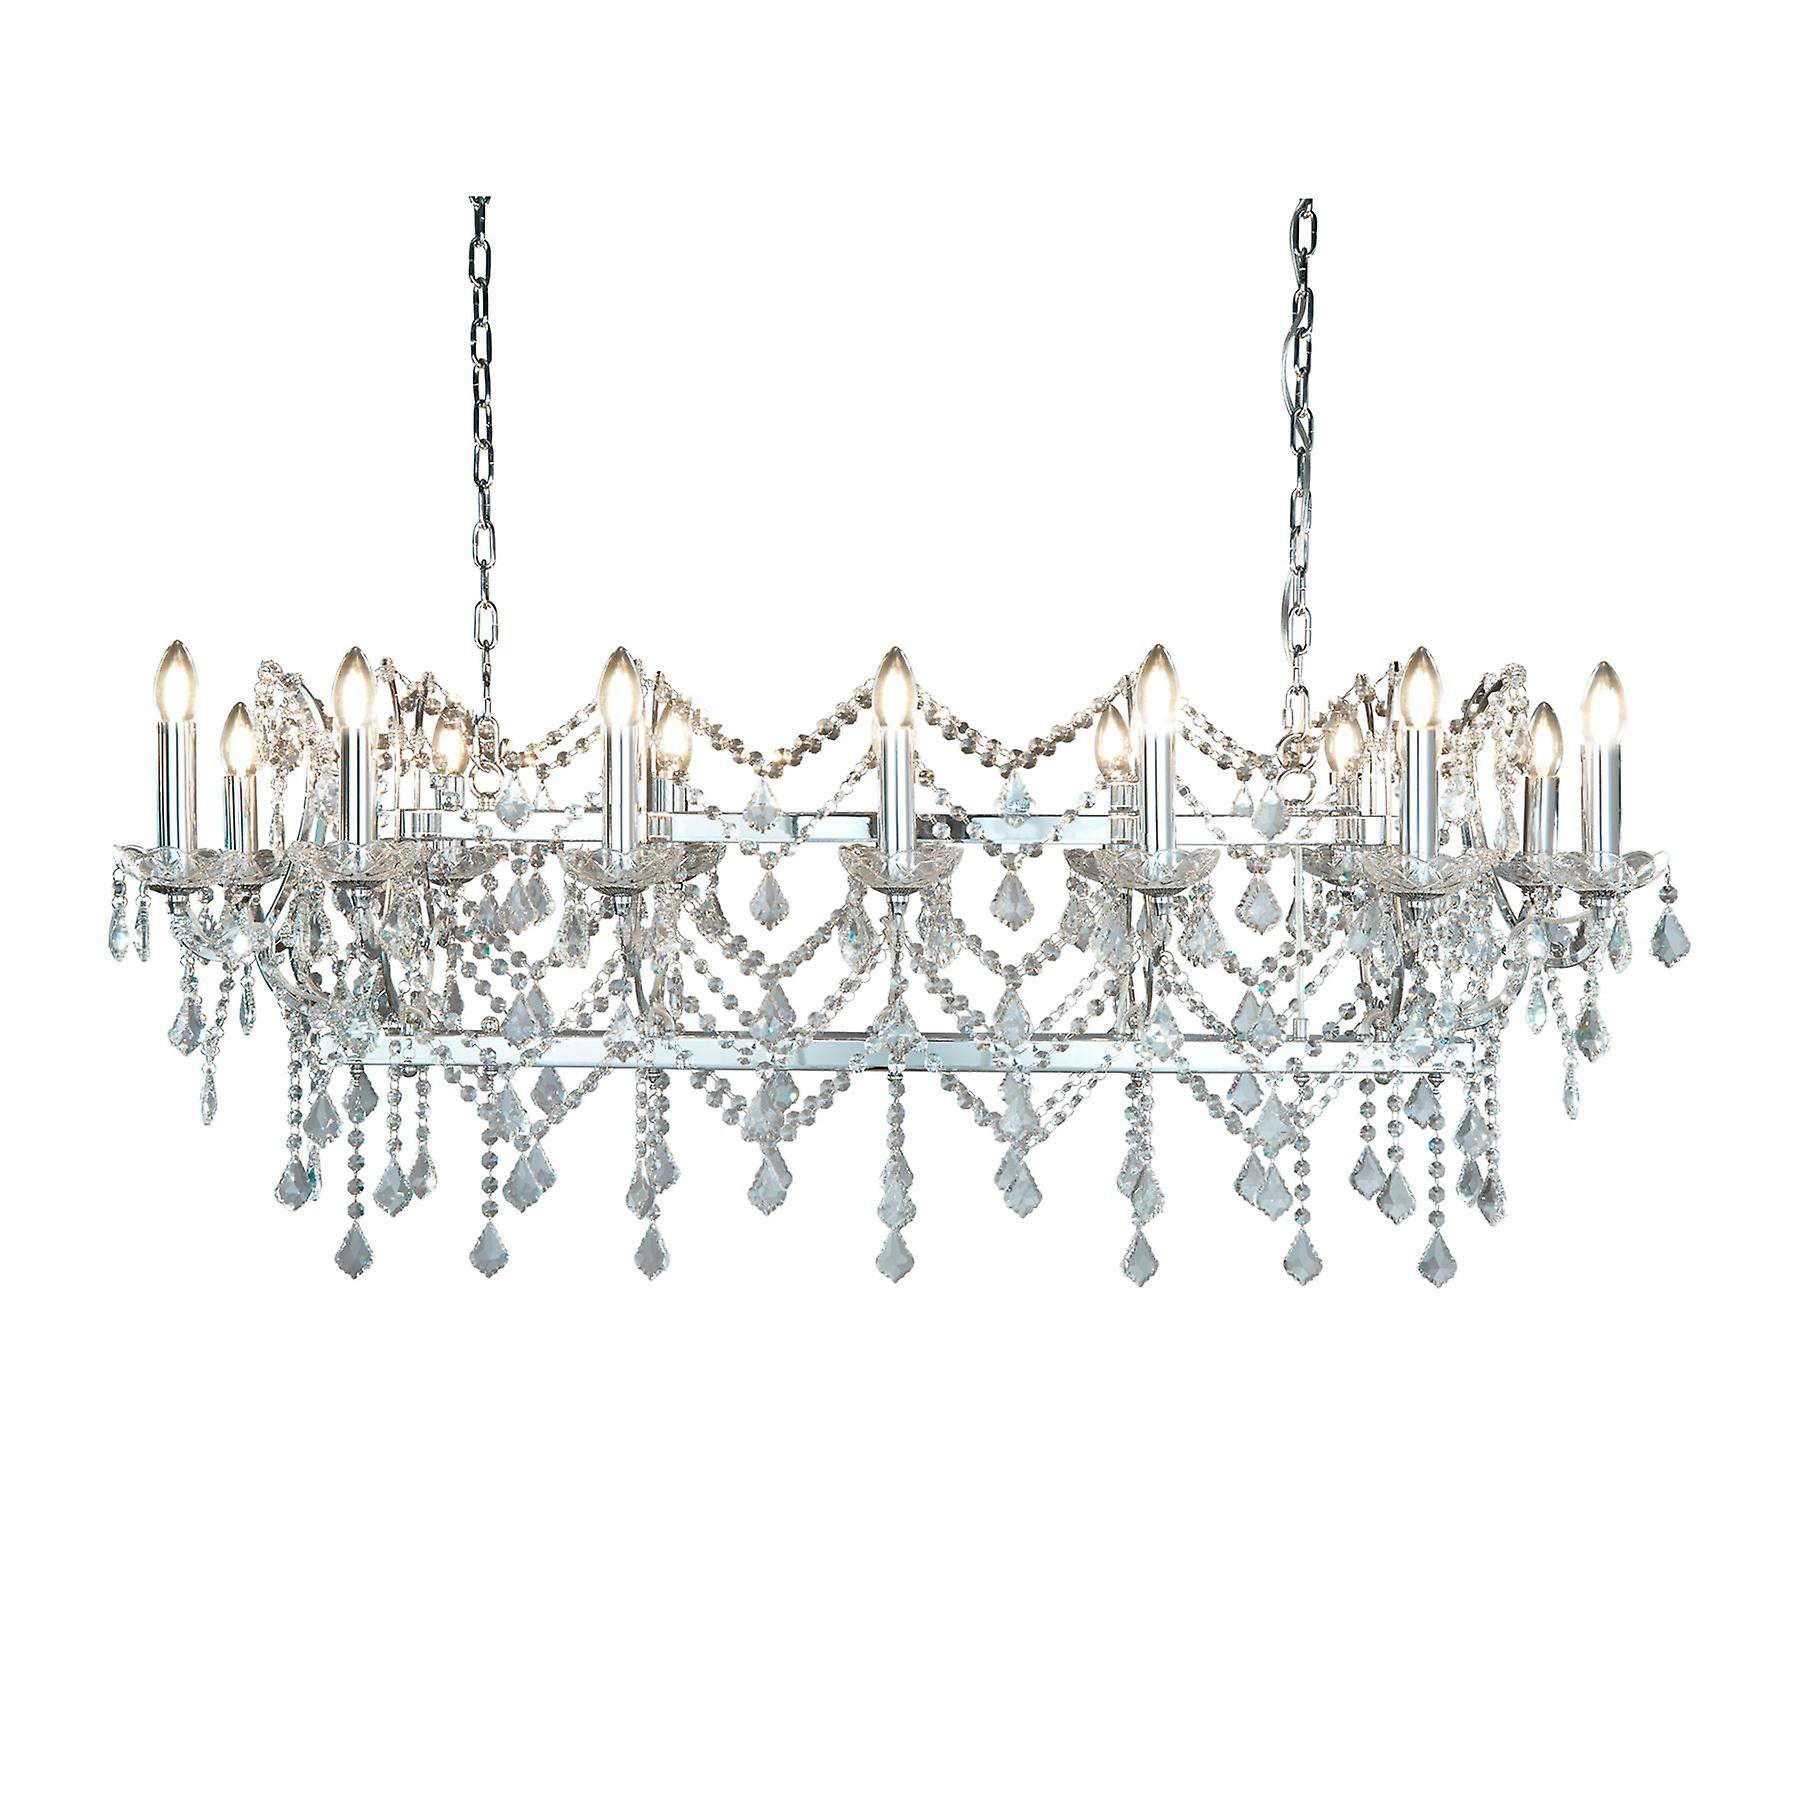 Florence Chrome And Crystal Fourteen Light Chandelier - Searchlight 80614-14CC